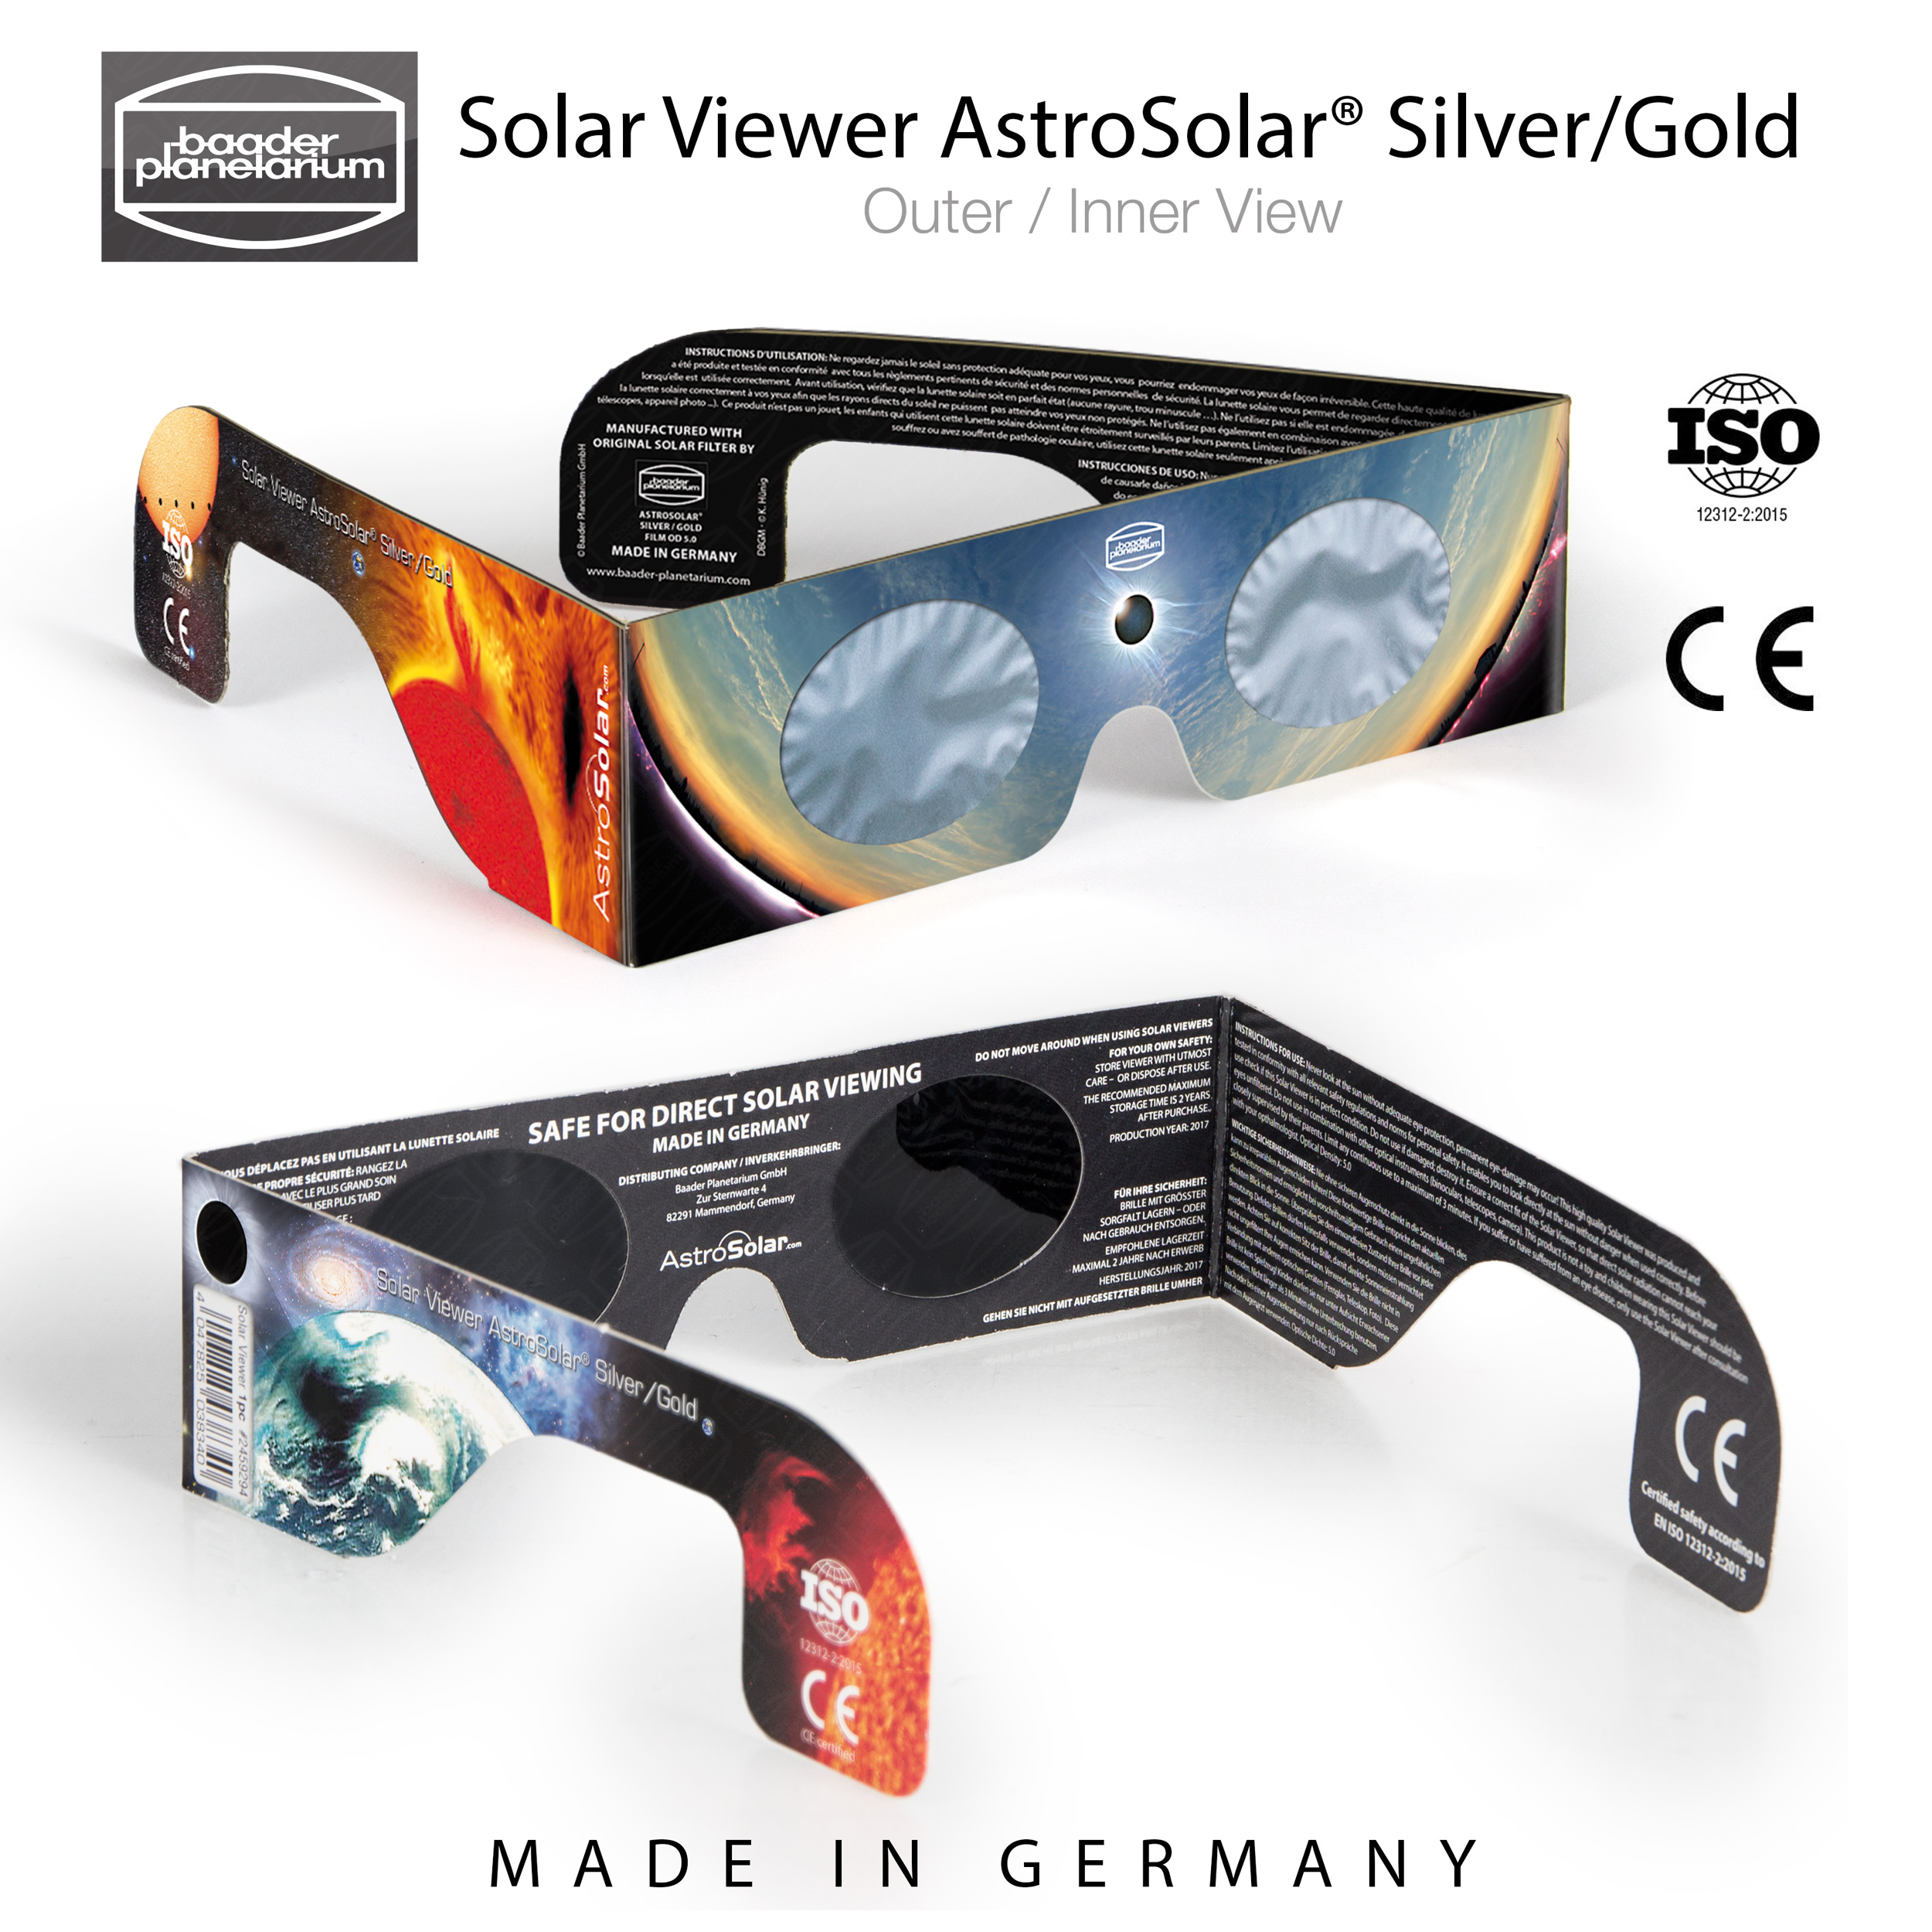 Concerning fear about counterfeit Baader AstroSolar Viewers and Film ...